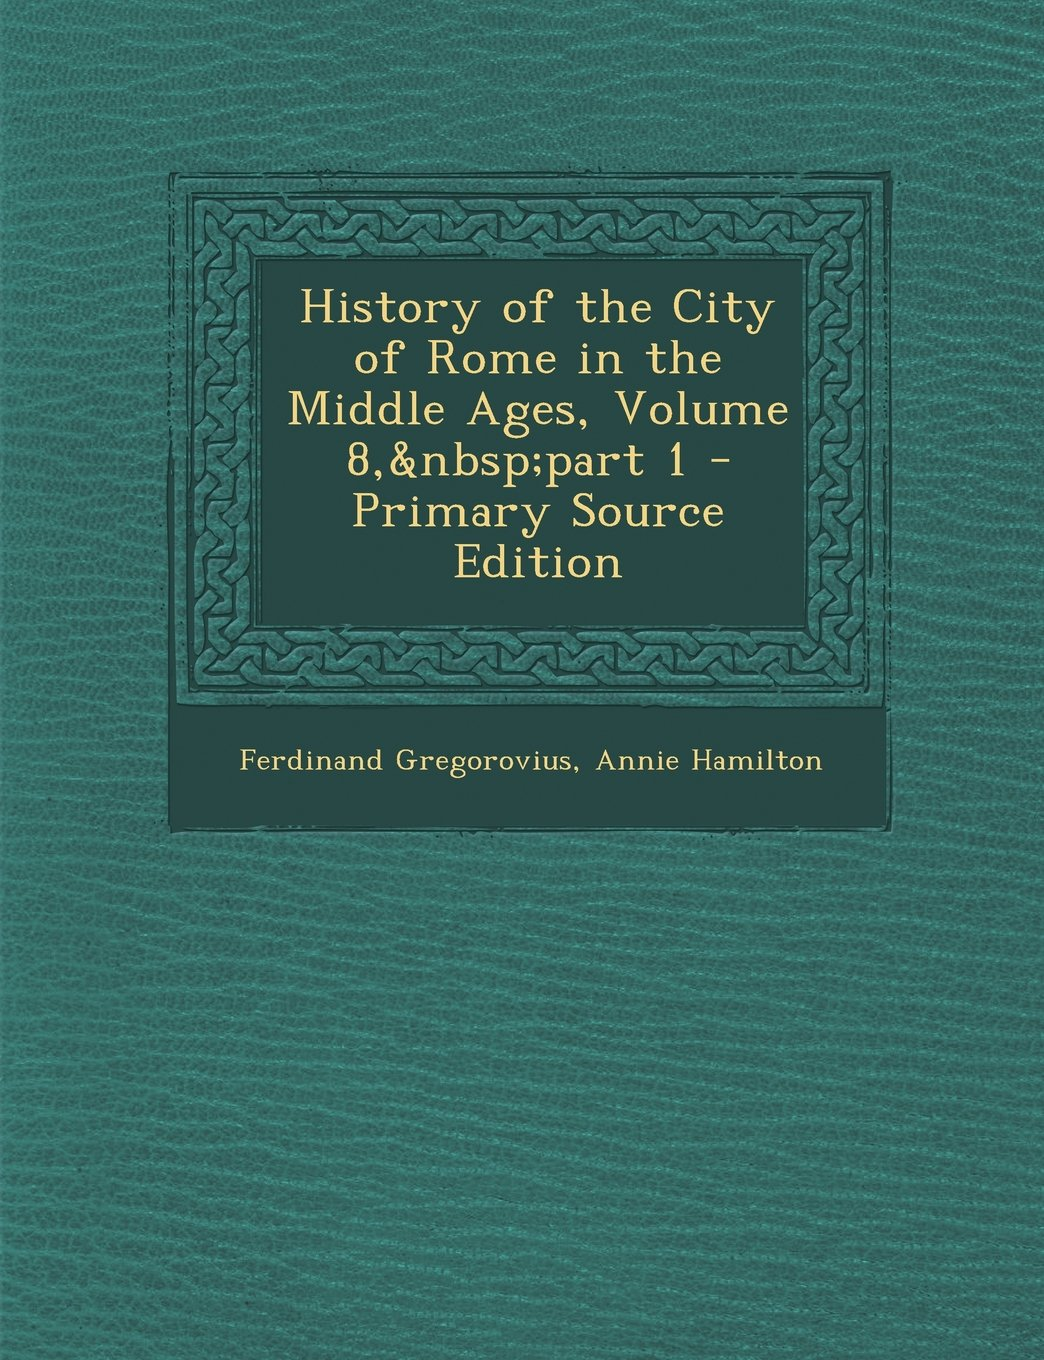 History of the City of Rome in the Middle Ages, Volume 8, Part 1 pdf